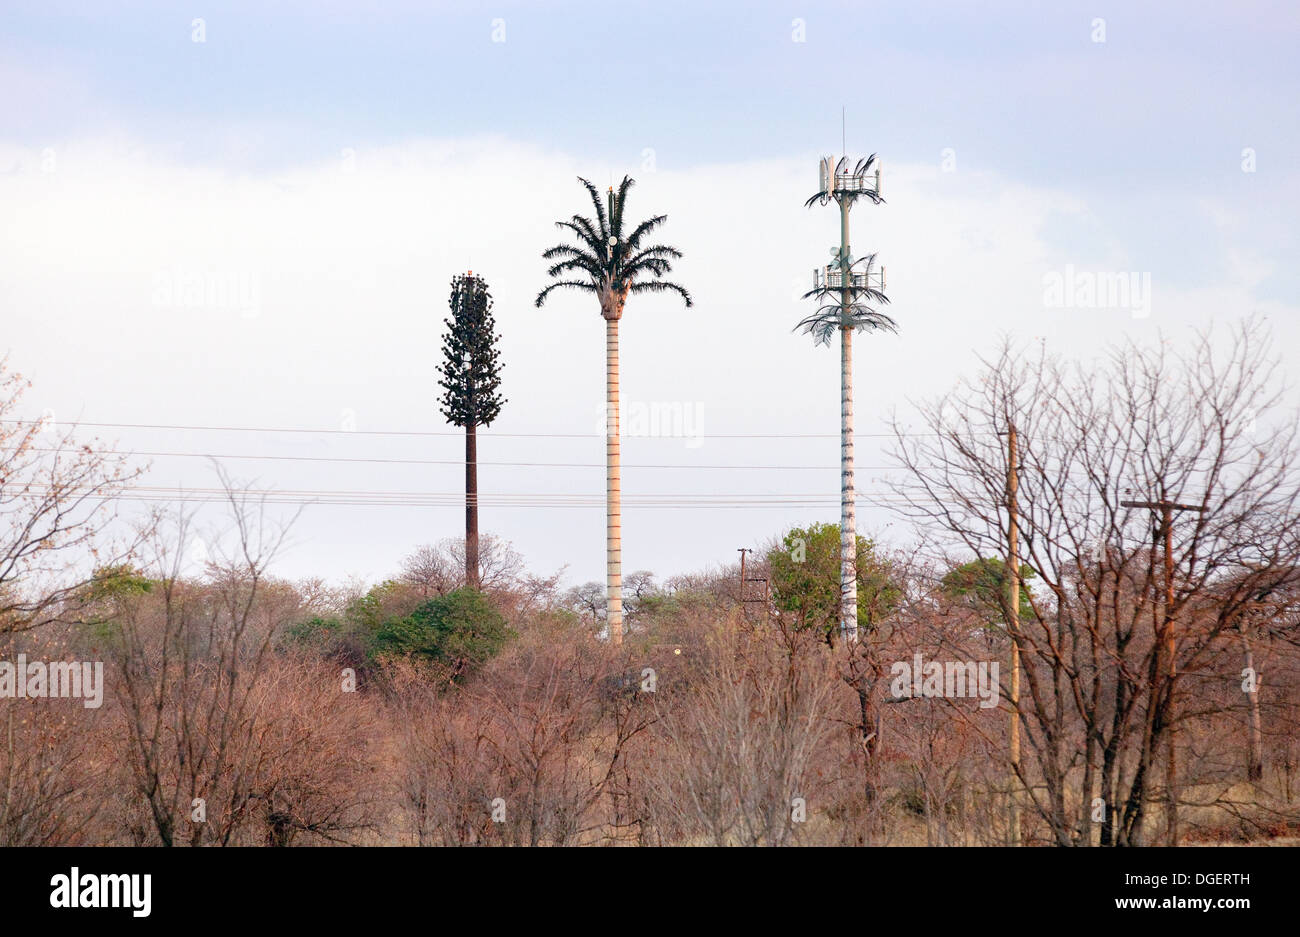 Three mobile phone masts disguised as trees in the Mosi oa Tunya National Park, near the Victoria Falls, Zambia Africa - Stock Image